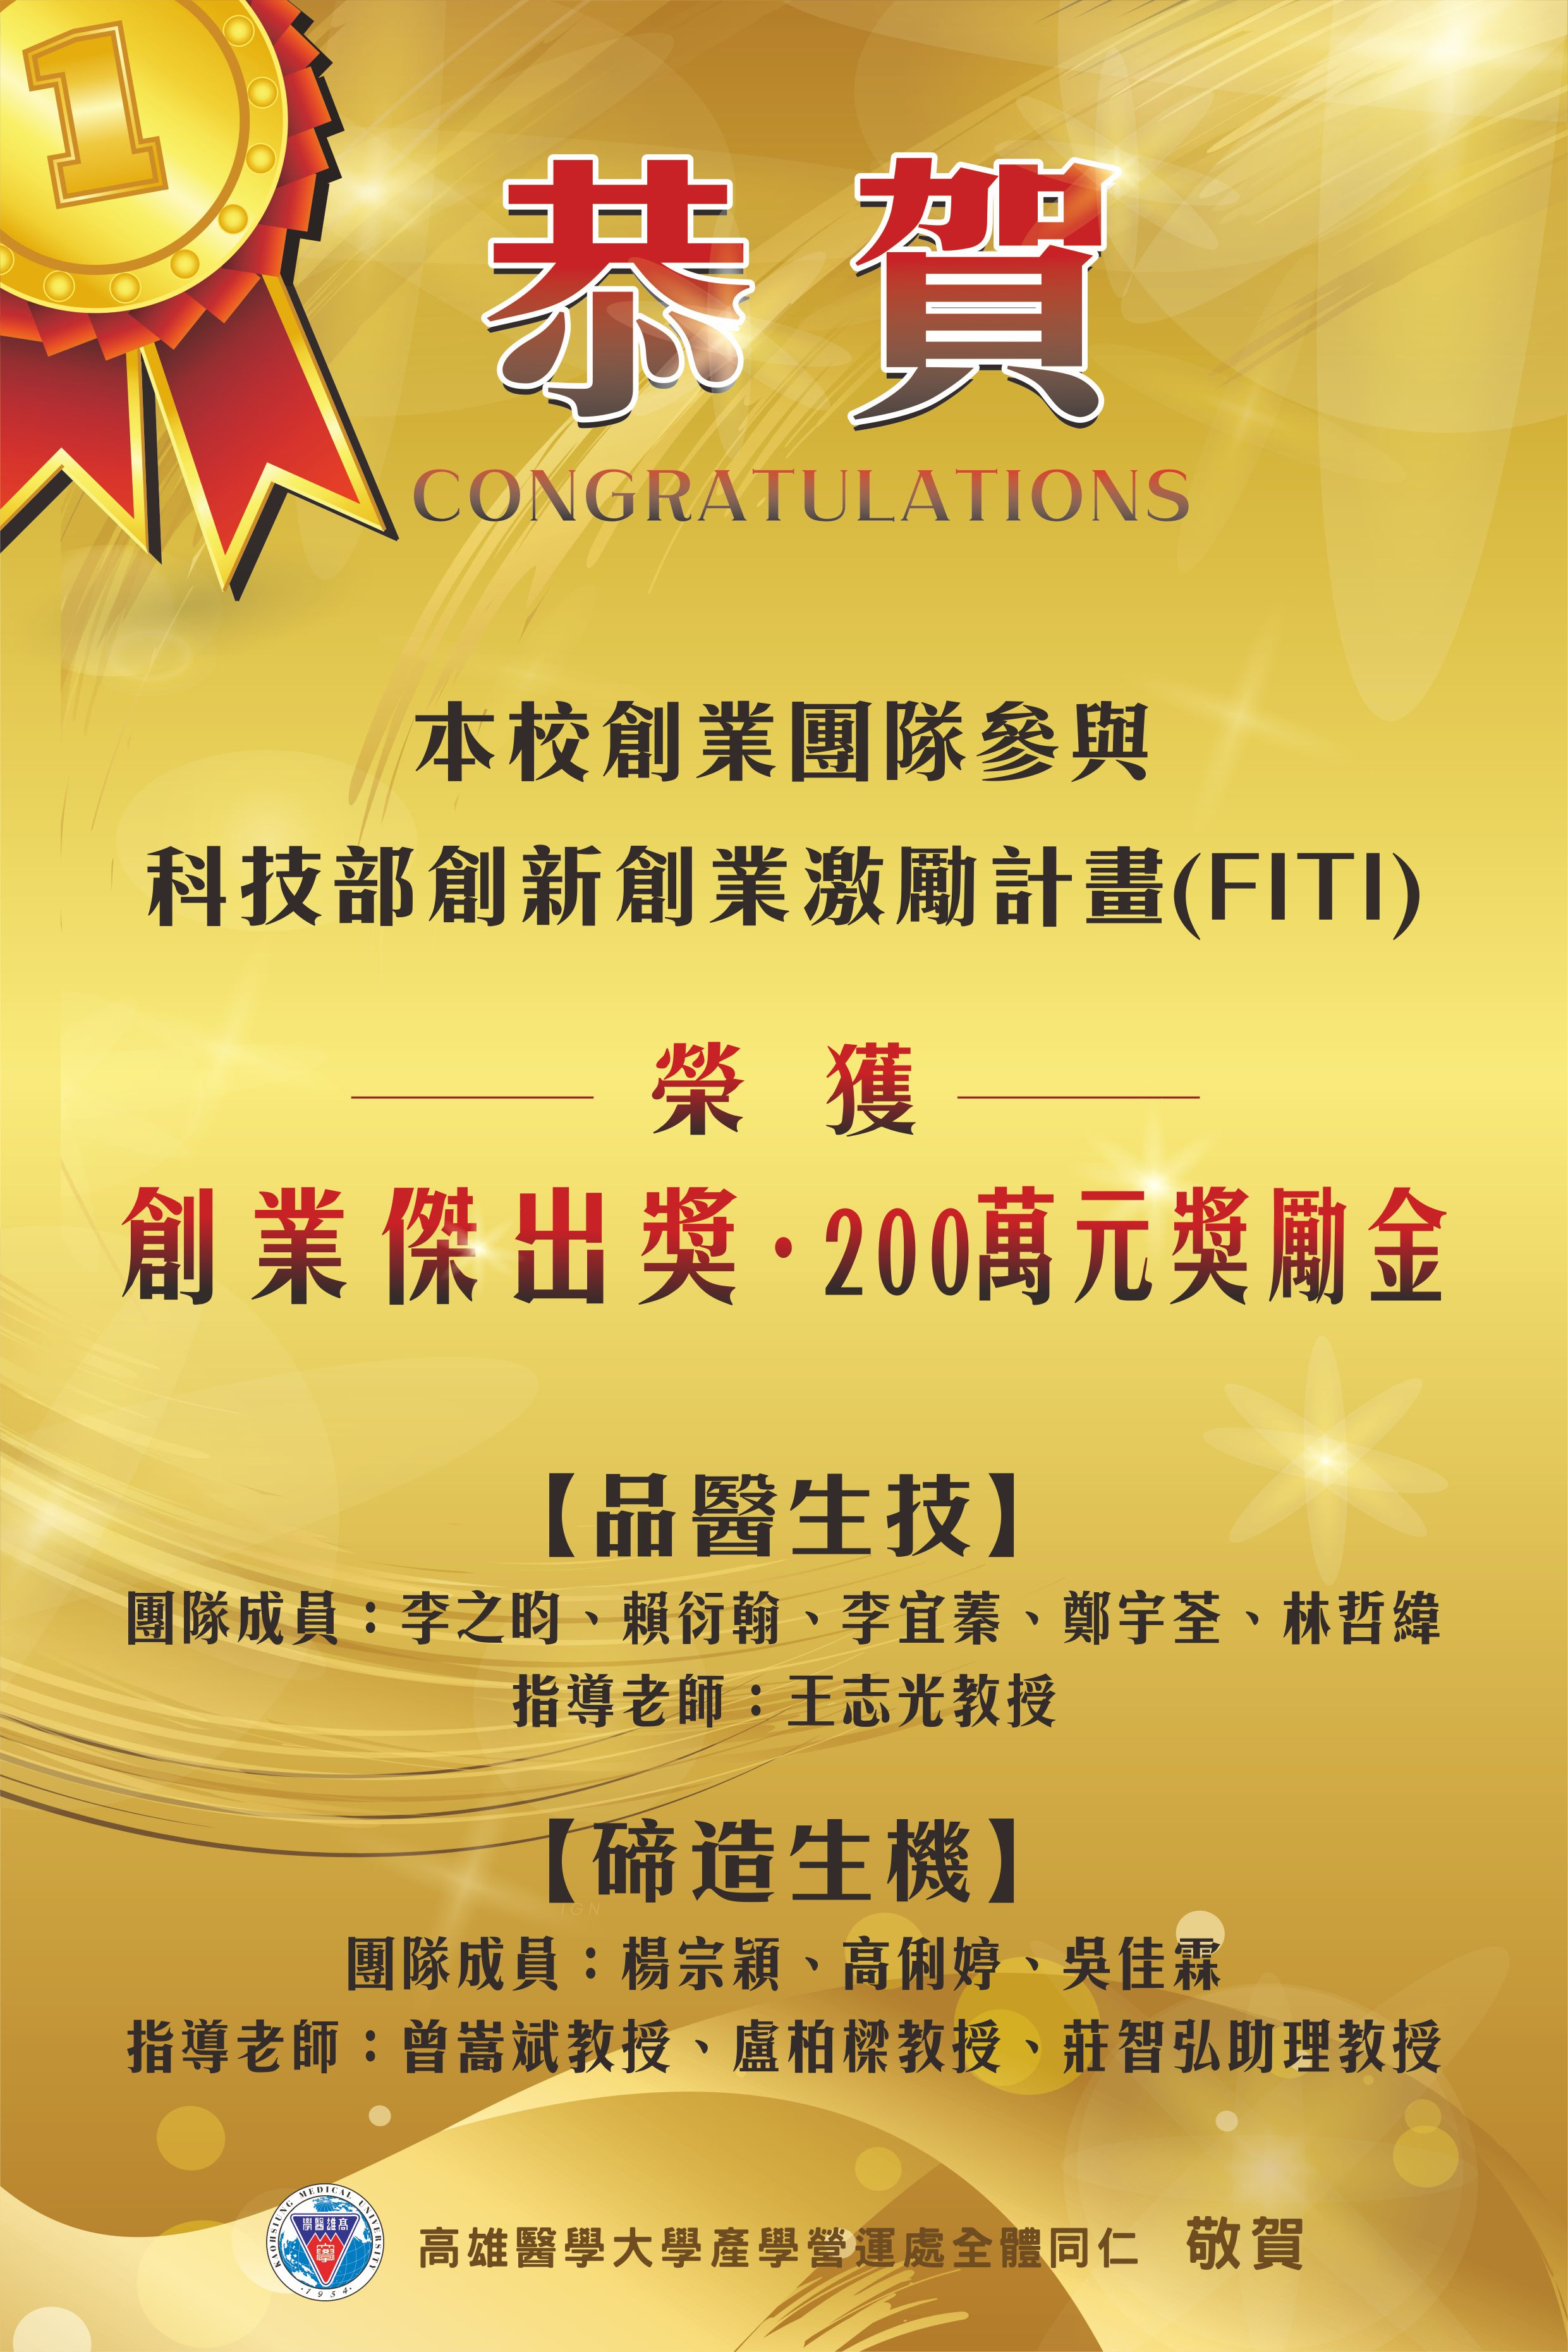 Congratulation 2 KMU Startup teams obtained glory of TOP 1 from MOST FITI Programjpg